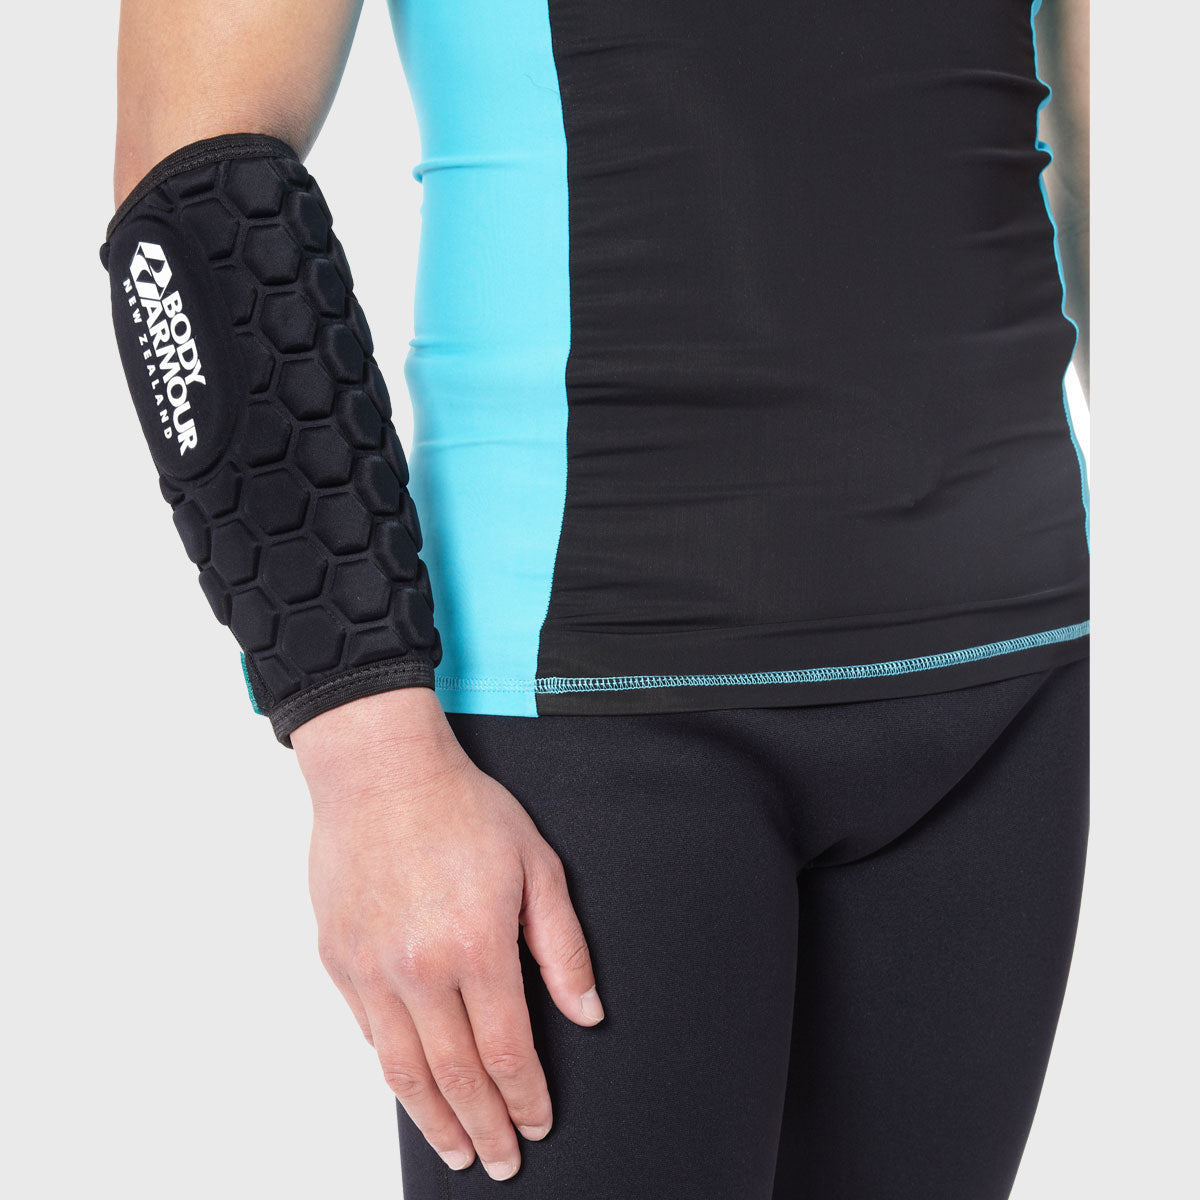 Rugby Forearm Protector